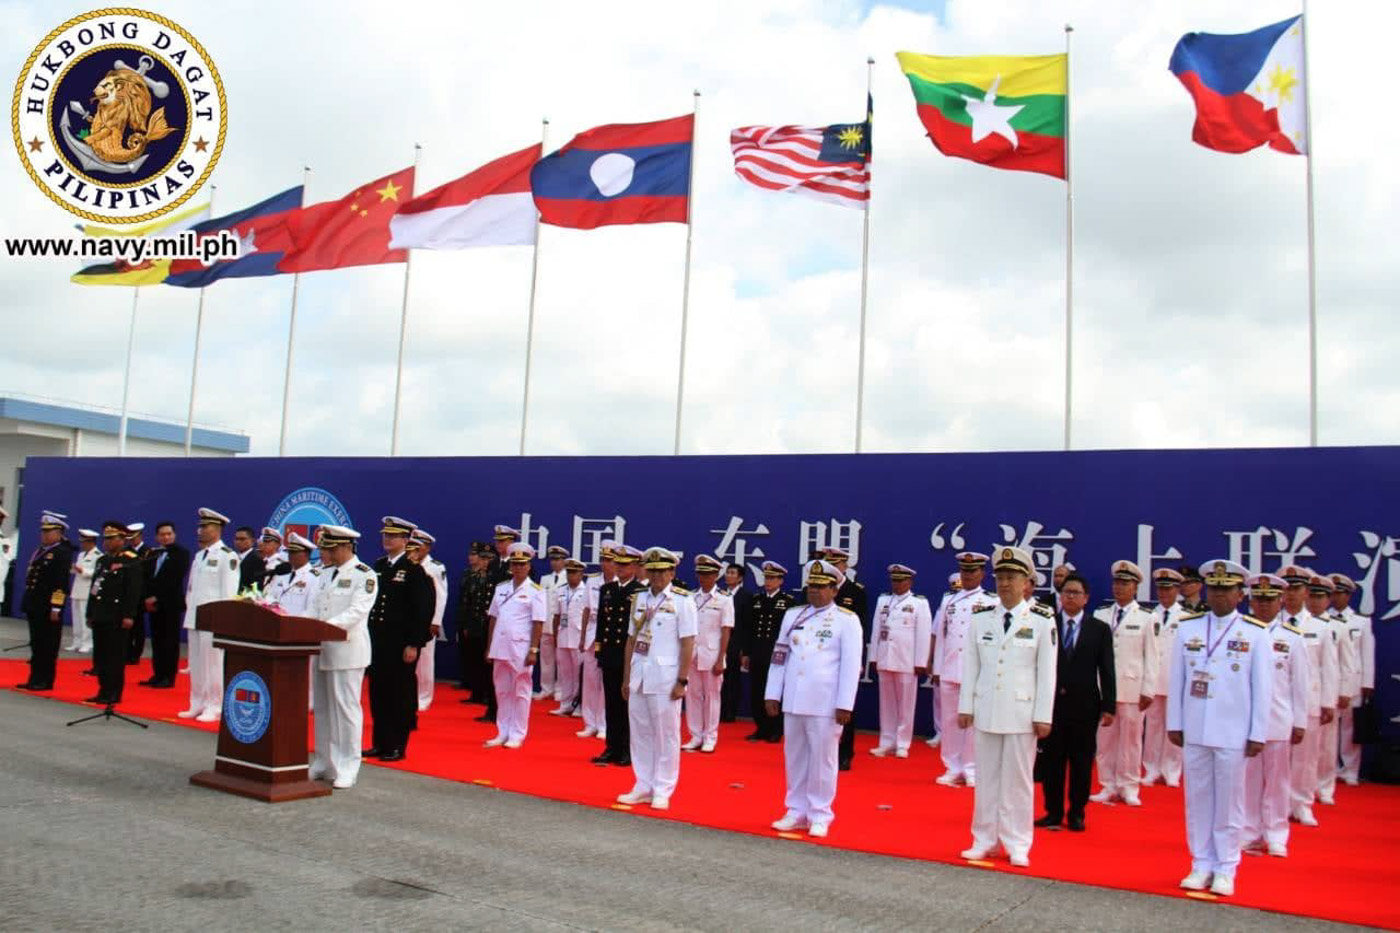 INAUGURAL EXERCISES. The ASEAN-China Maritime Exercises 2018 is held in Chinau2019s Zhanjiang province October 21-28, 2018. Photo courtesy of the Philippine Navy